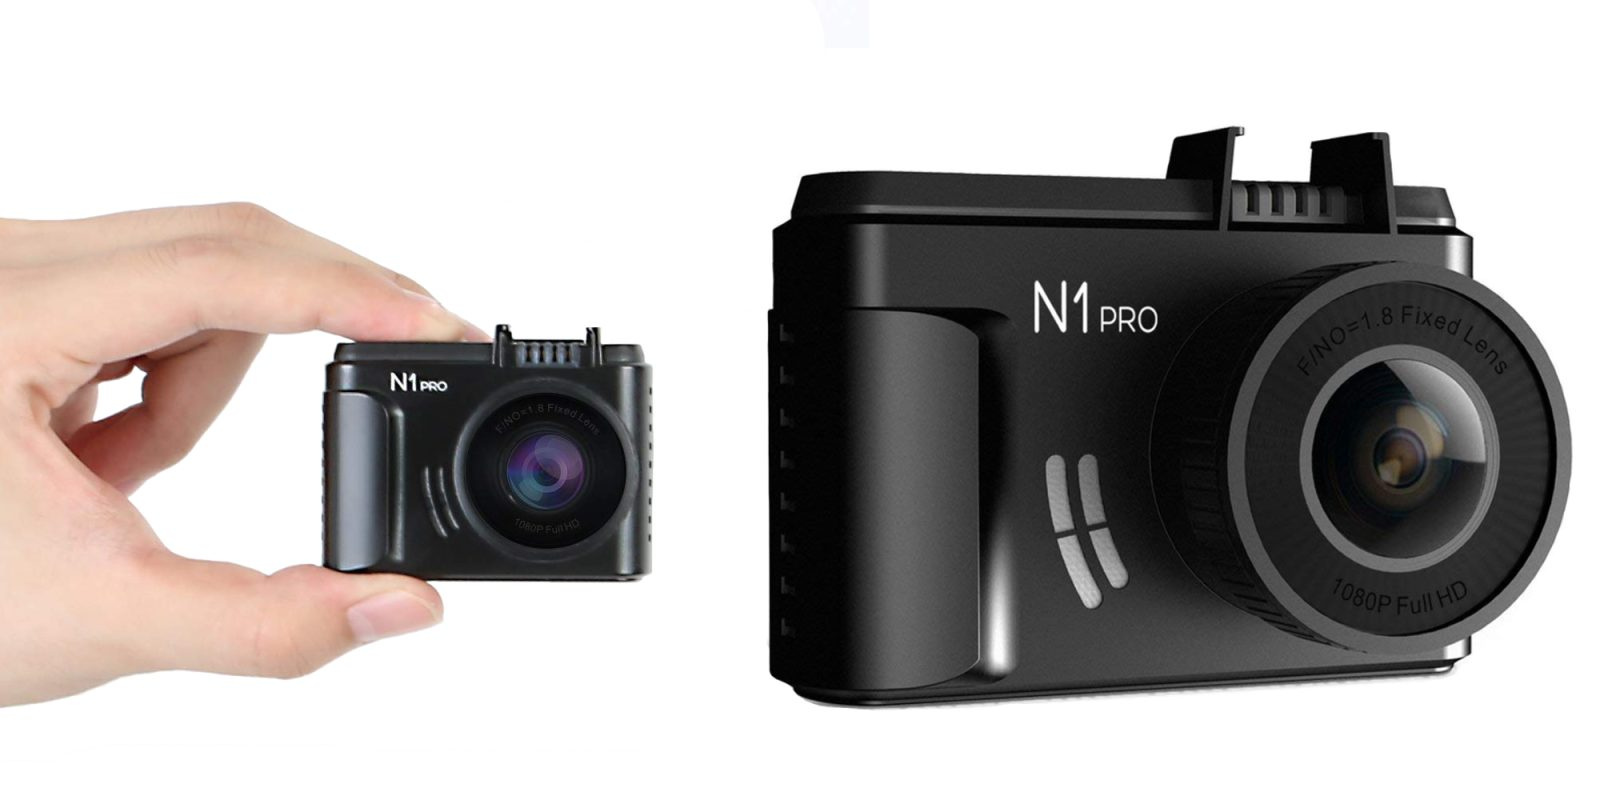 Every vehicle should have a dash cam, these models record 1080/1440p from $53